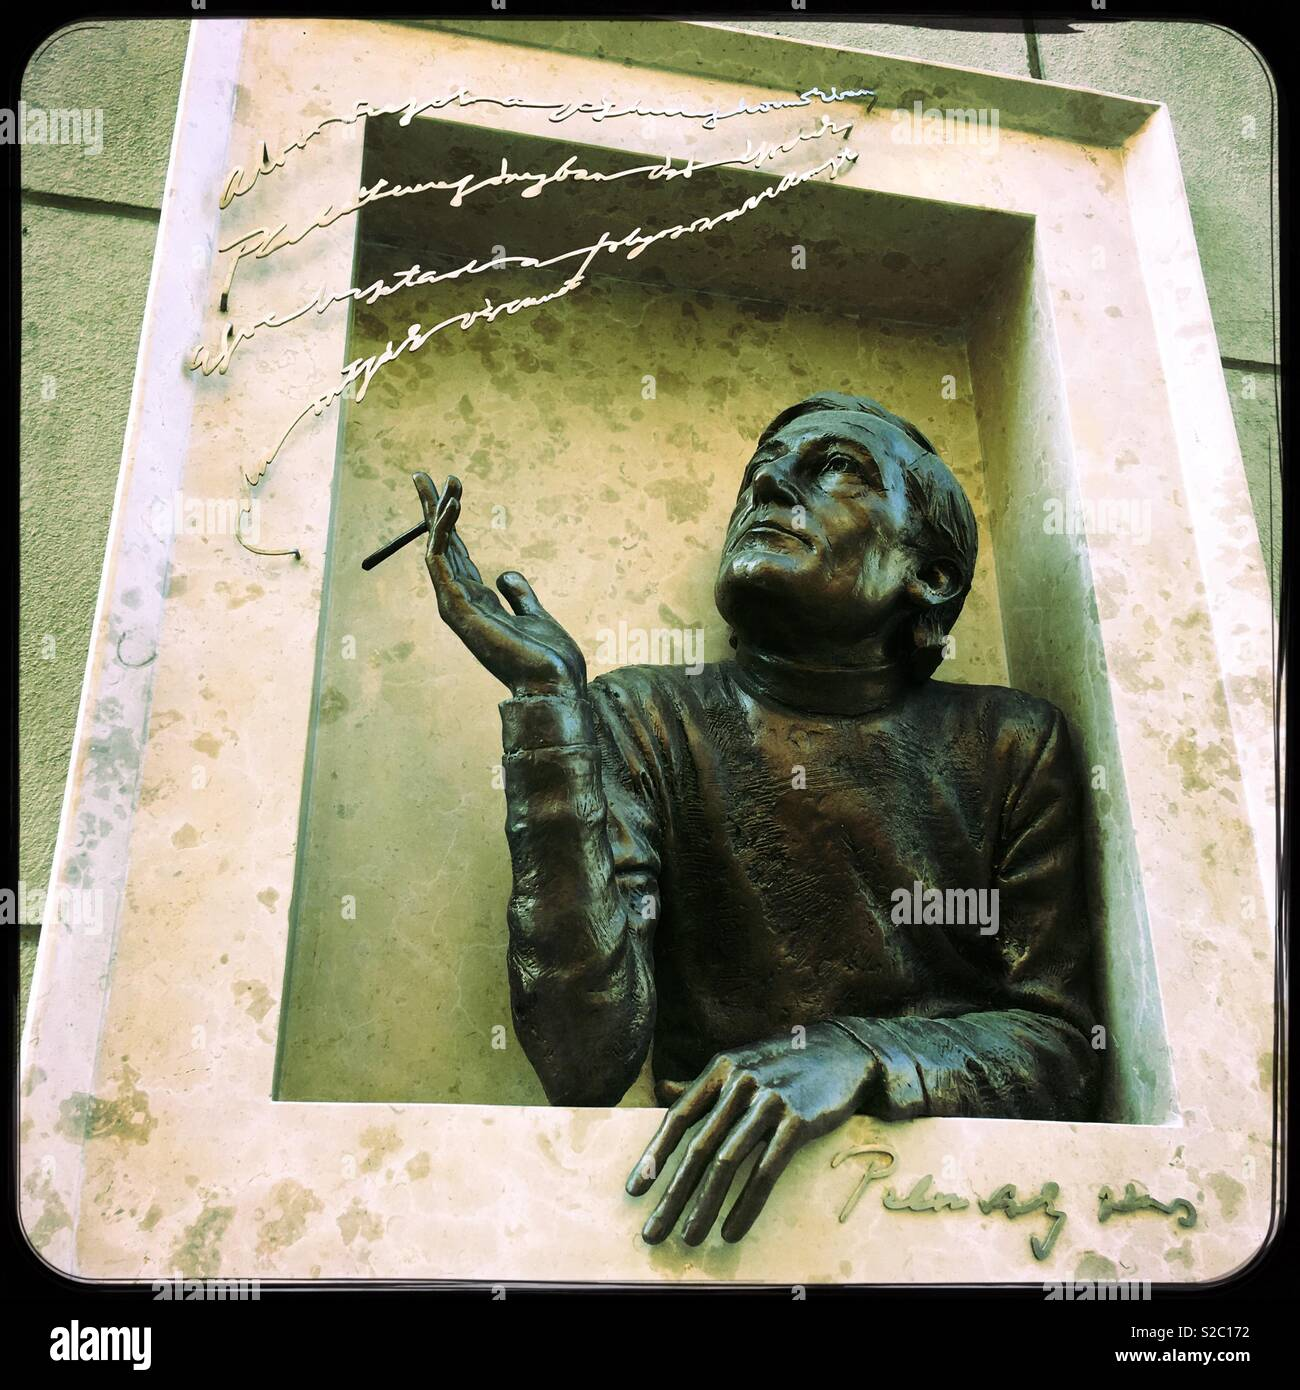 Sculpture of a man smoking out of a window. Budapest, Hungary. - Stock Image